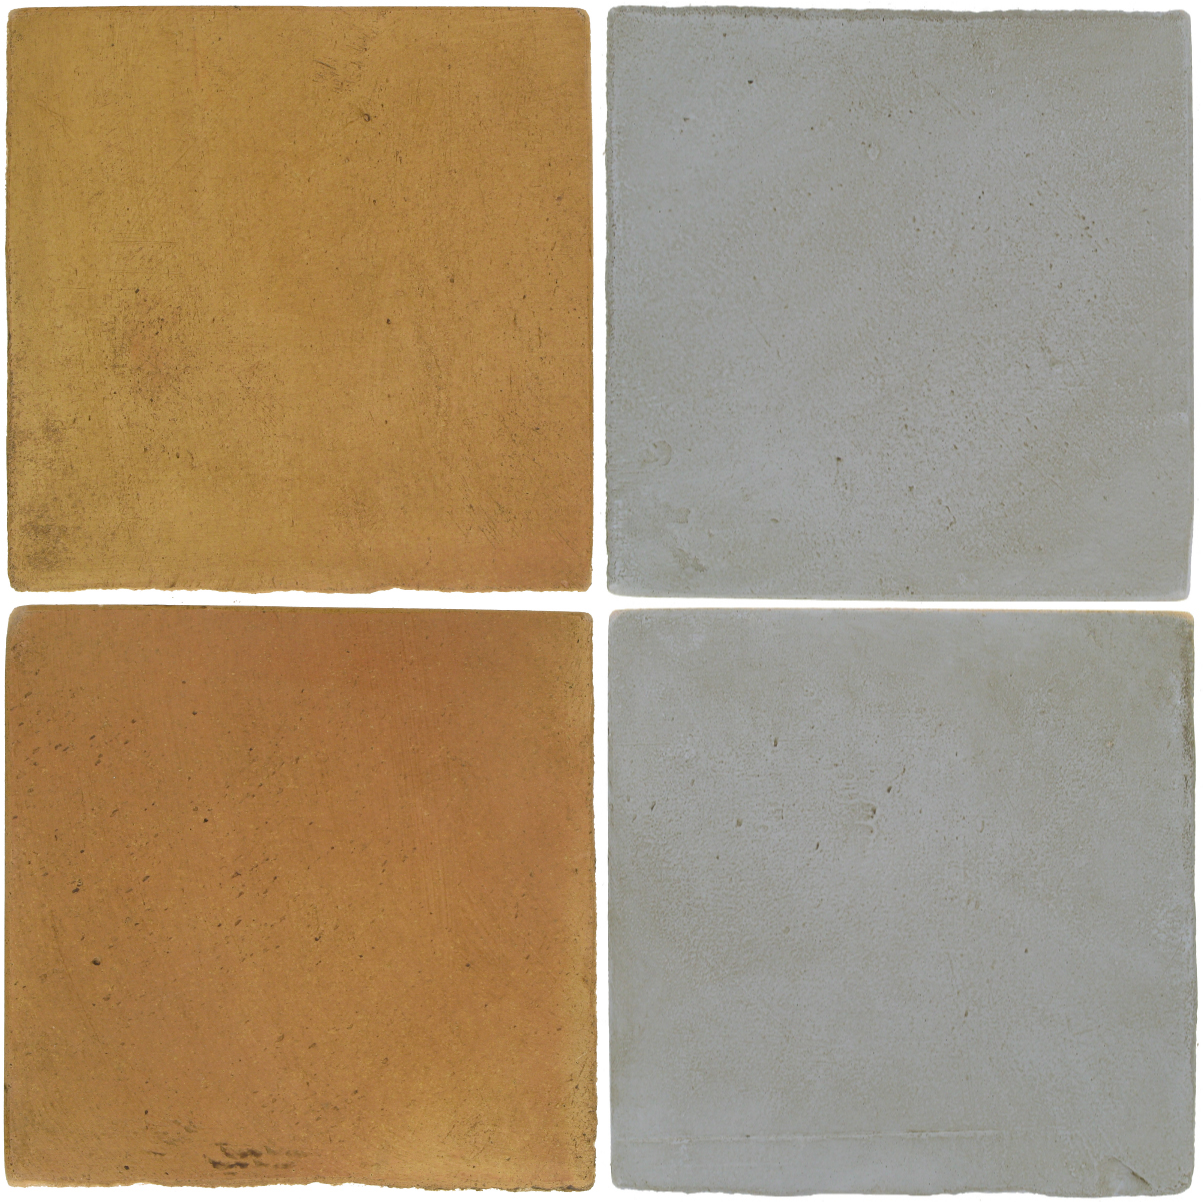 Pedralbes Antique Terracotta  2 Color Combinations  OHS-PSSW Siena Wheat + OHS-PGOG Oyster Grey